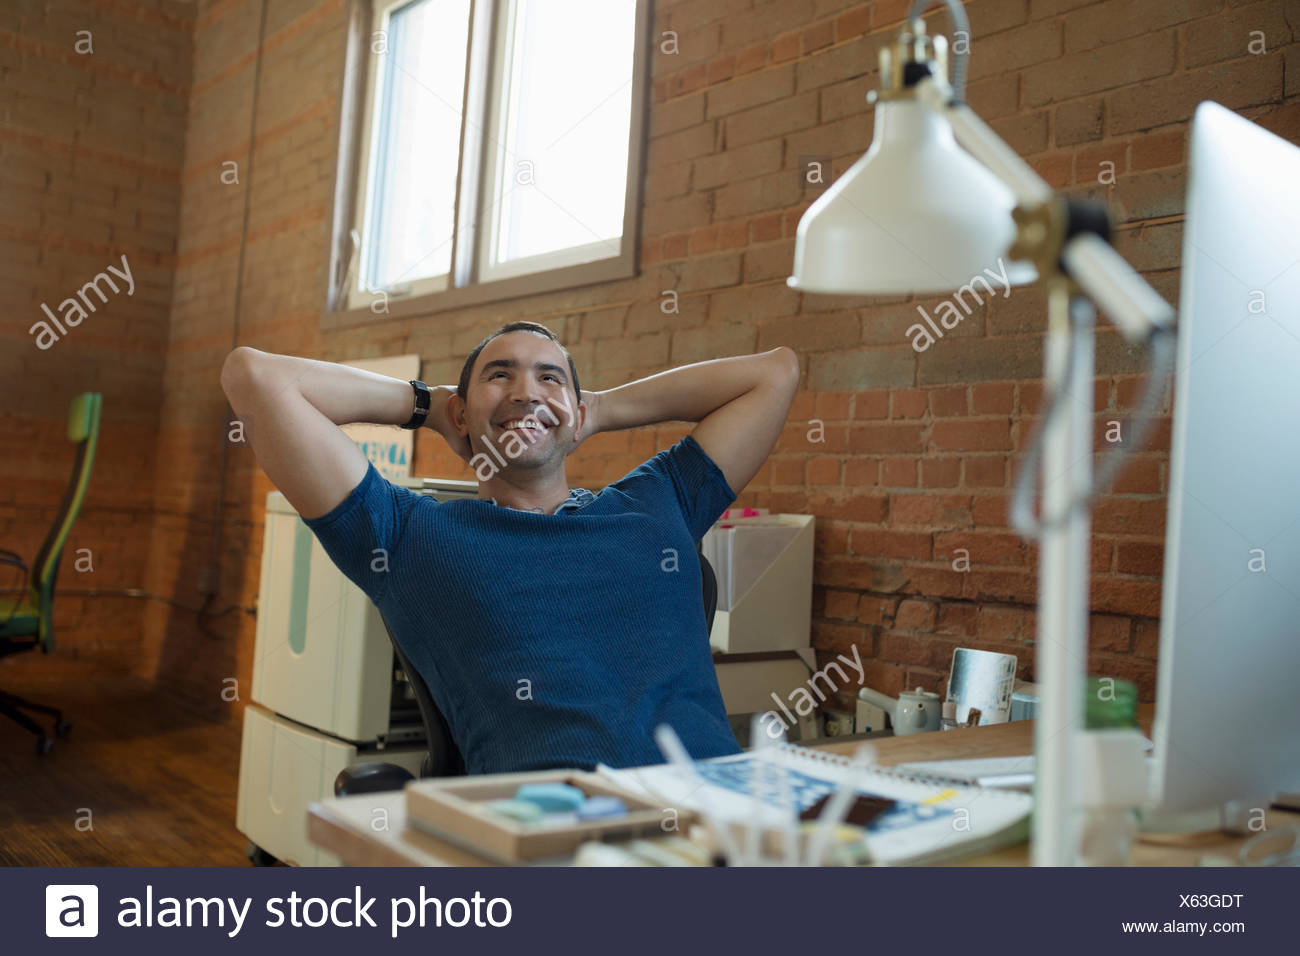 Happy creative businessman sitting at desk with hands behind head - Stock Image